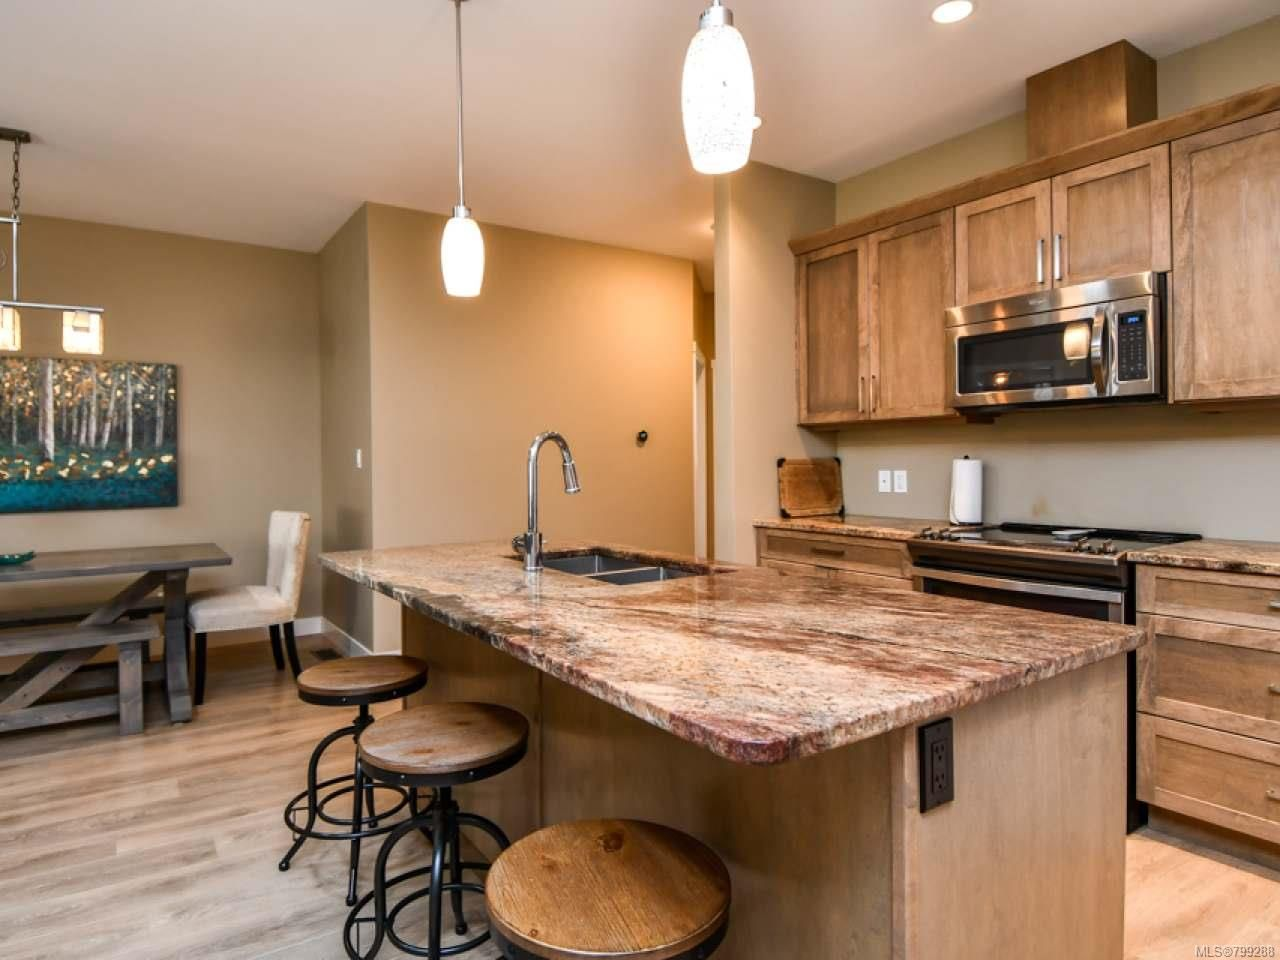 Photo 17: Photos: 11 301 Arizona Dr in CAMPBELL RIVER: CR Willow Point Half Duplex for sale (Campbell River)  : MLS®# 799288